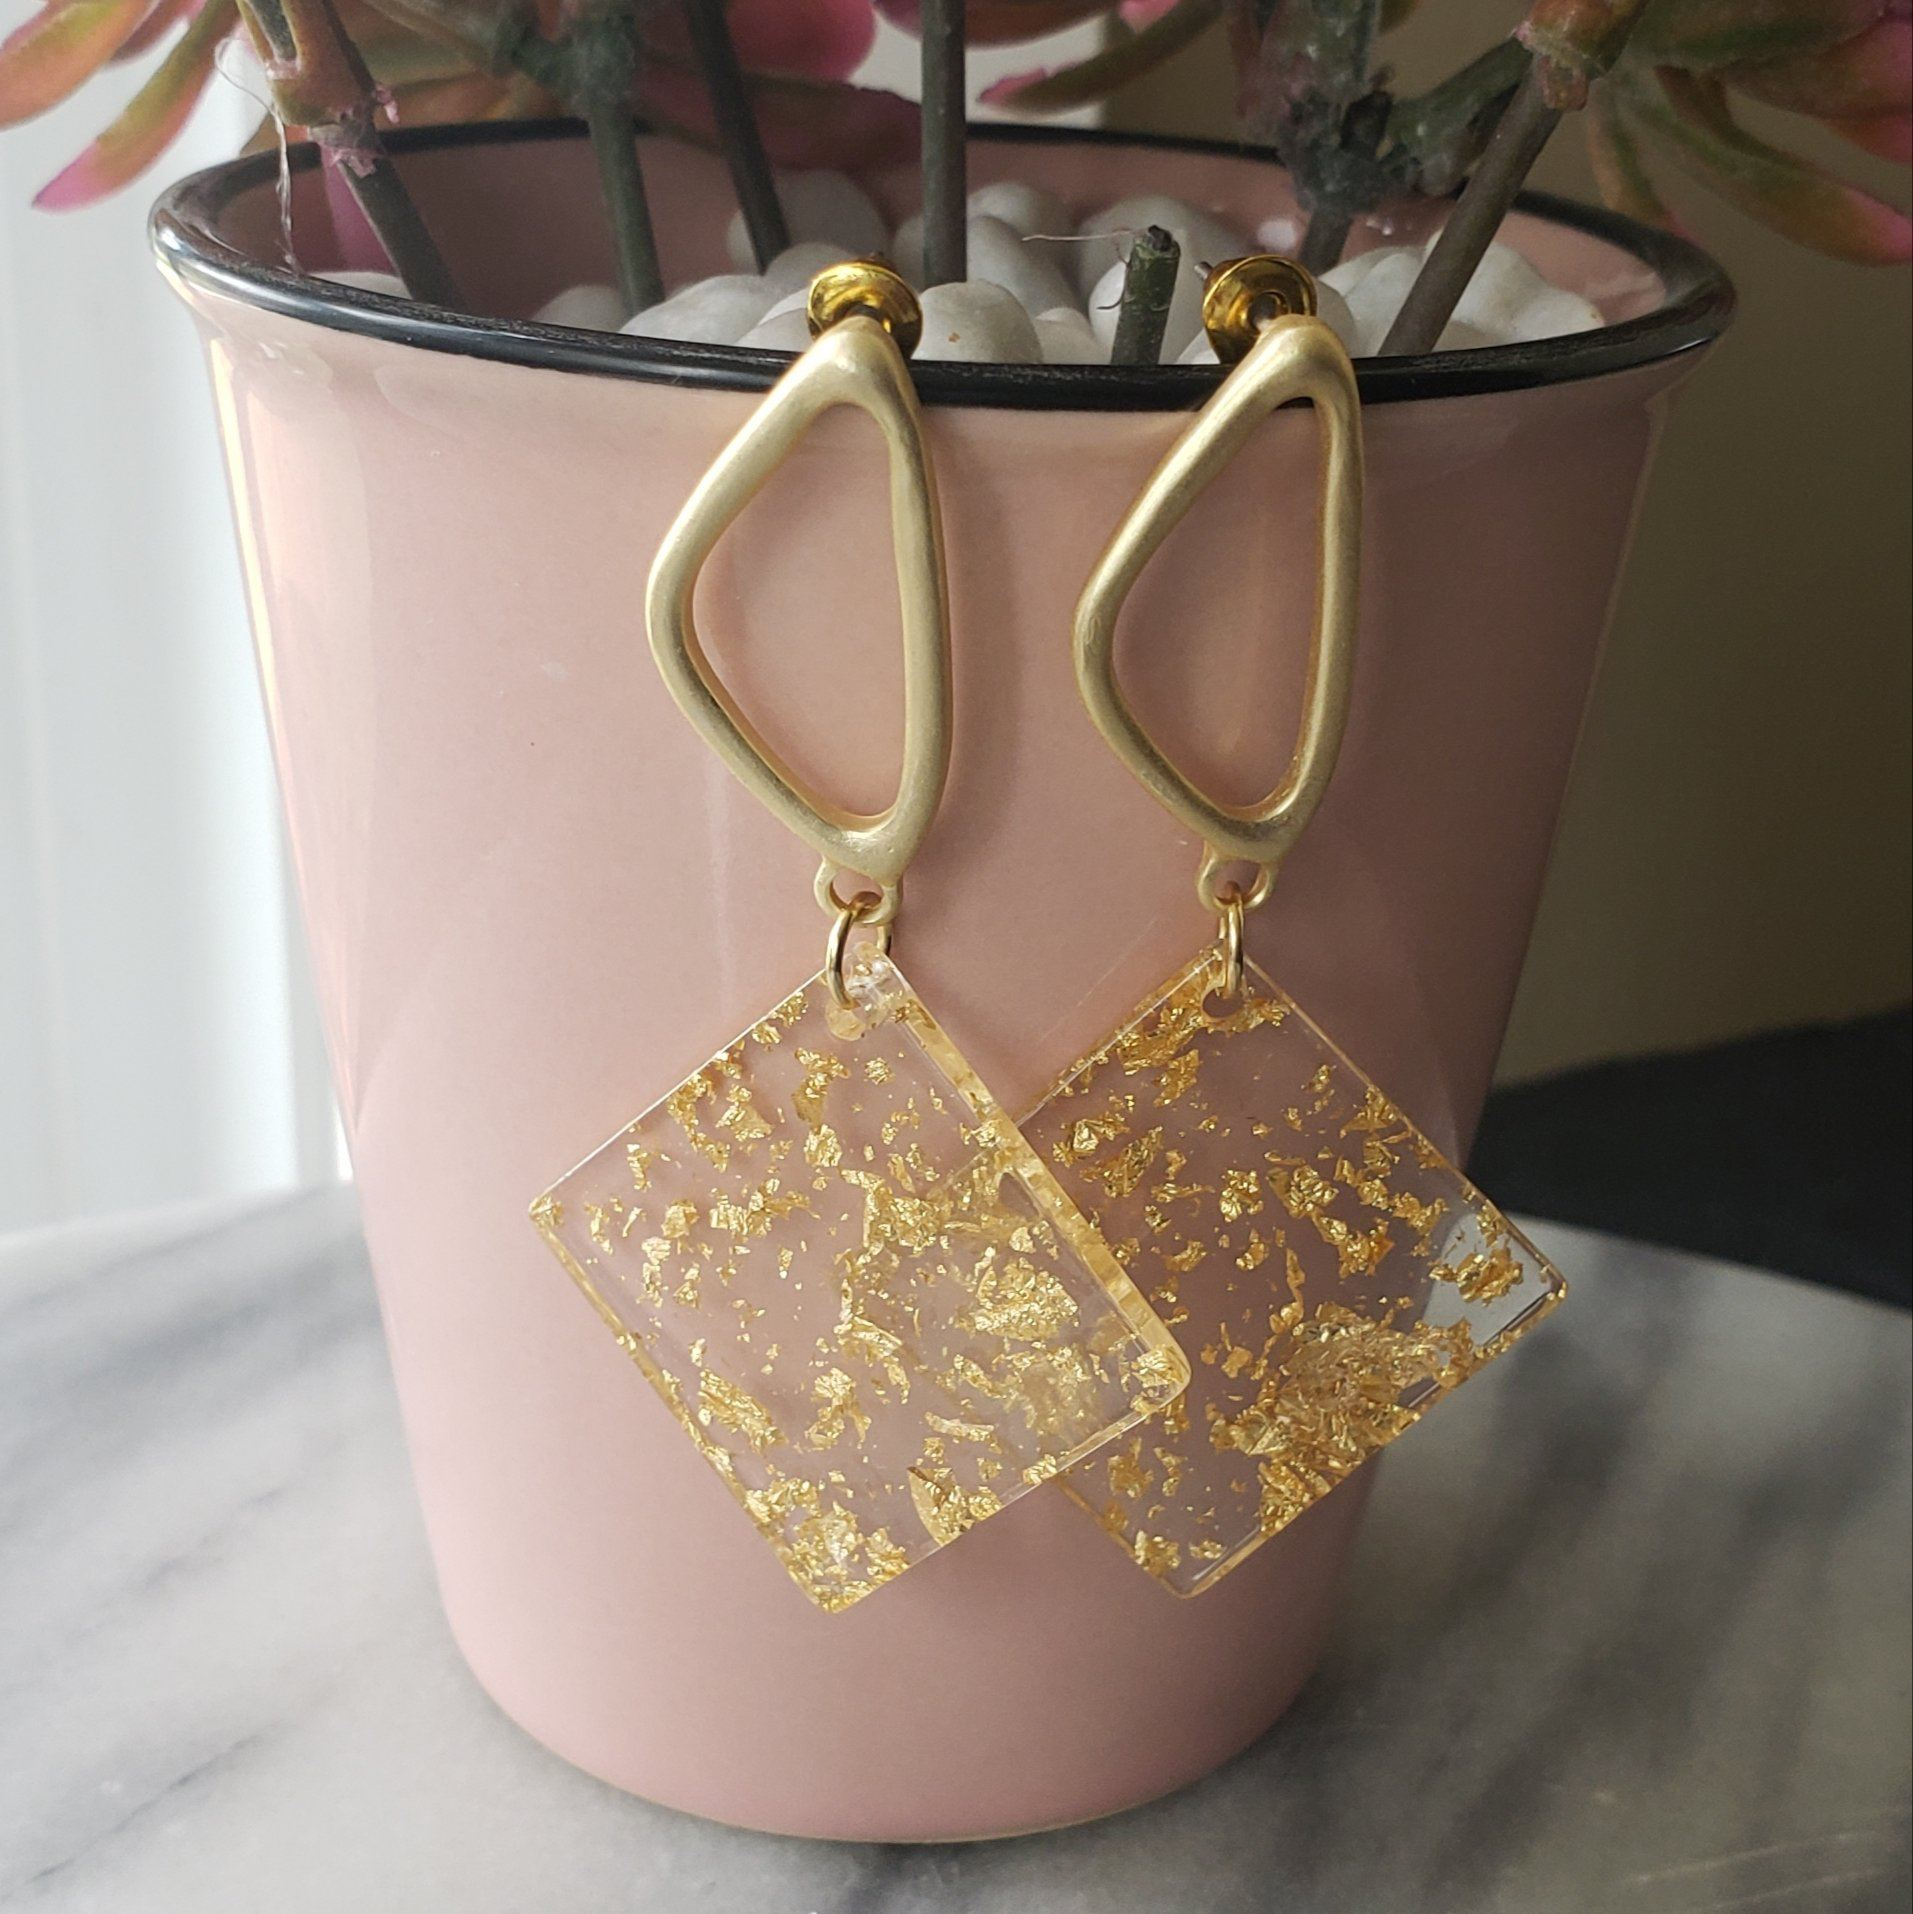 Serena - Resin Geometric Earrings Earrings Alora Boutique Diamond